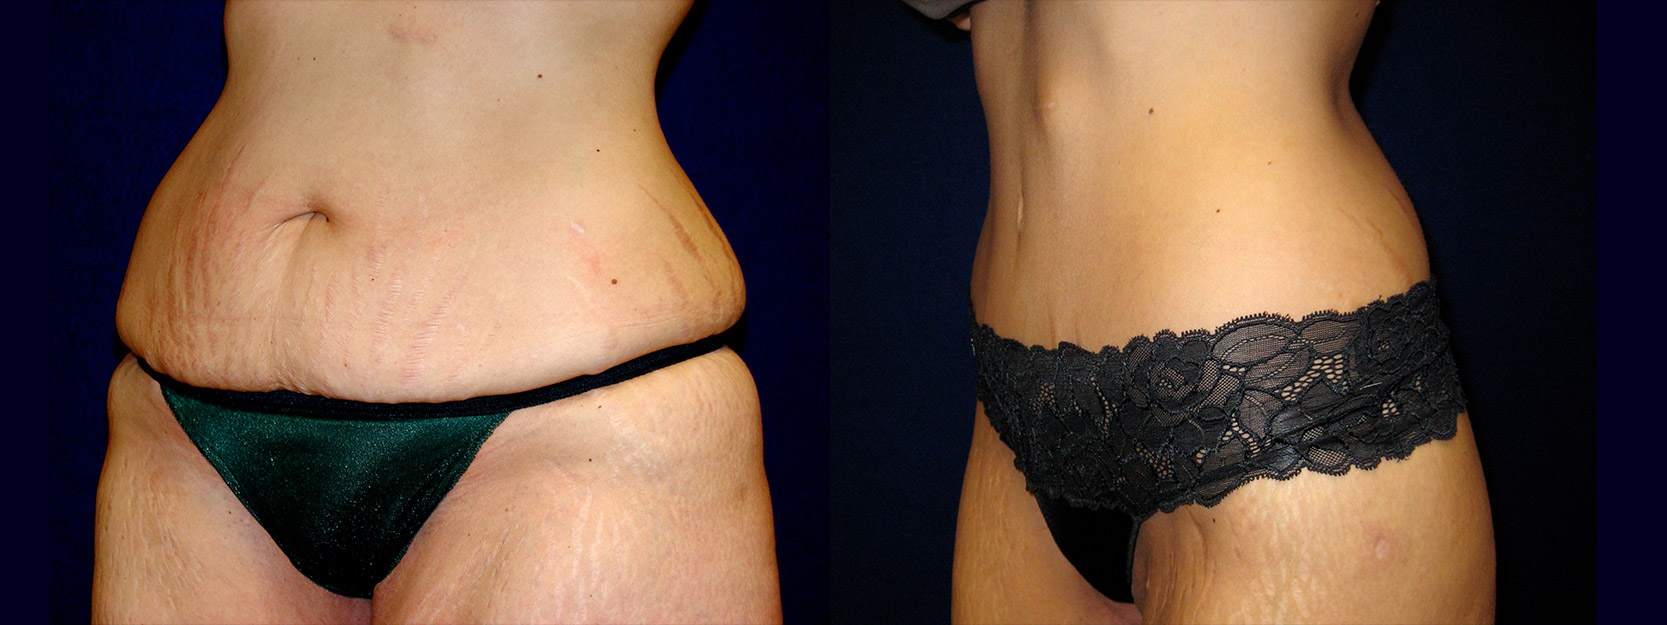 Left 3/4 View - Circumferential Abdominoplasty After Massive Weight Loss